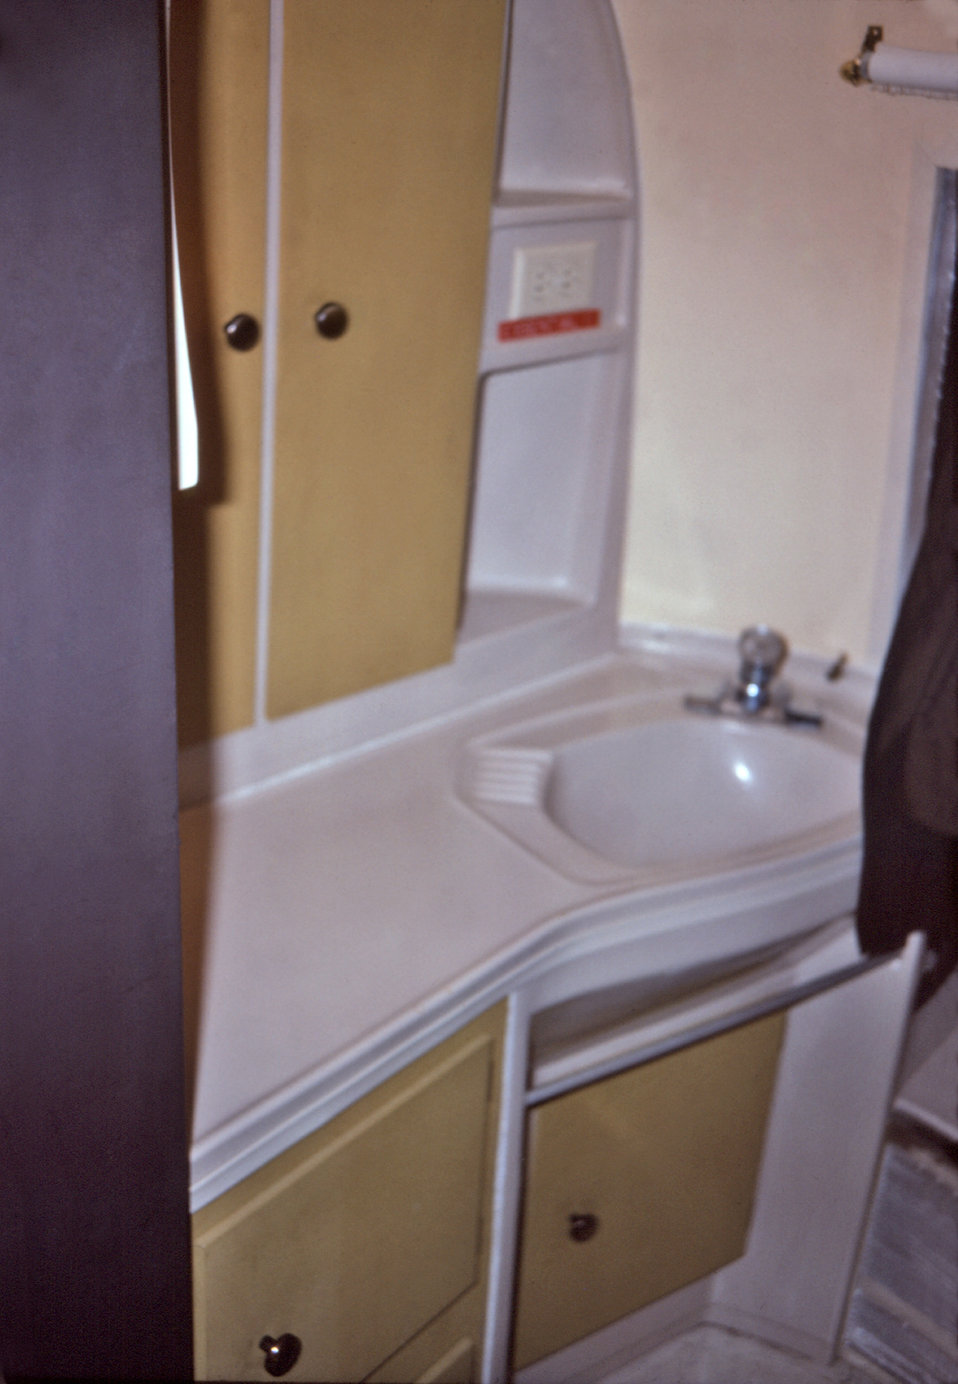 Shown here was the bathroom sink located within a mobile quarantine facility (MQF), which was photographed during a 1976 simulated medical q